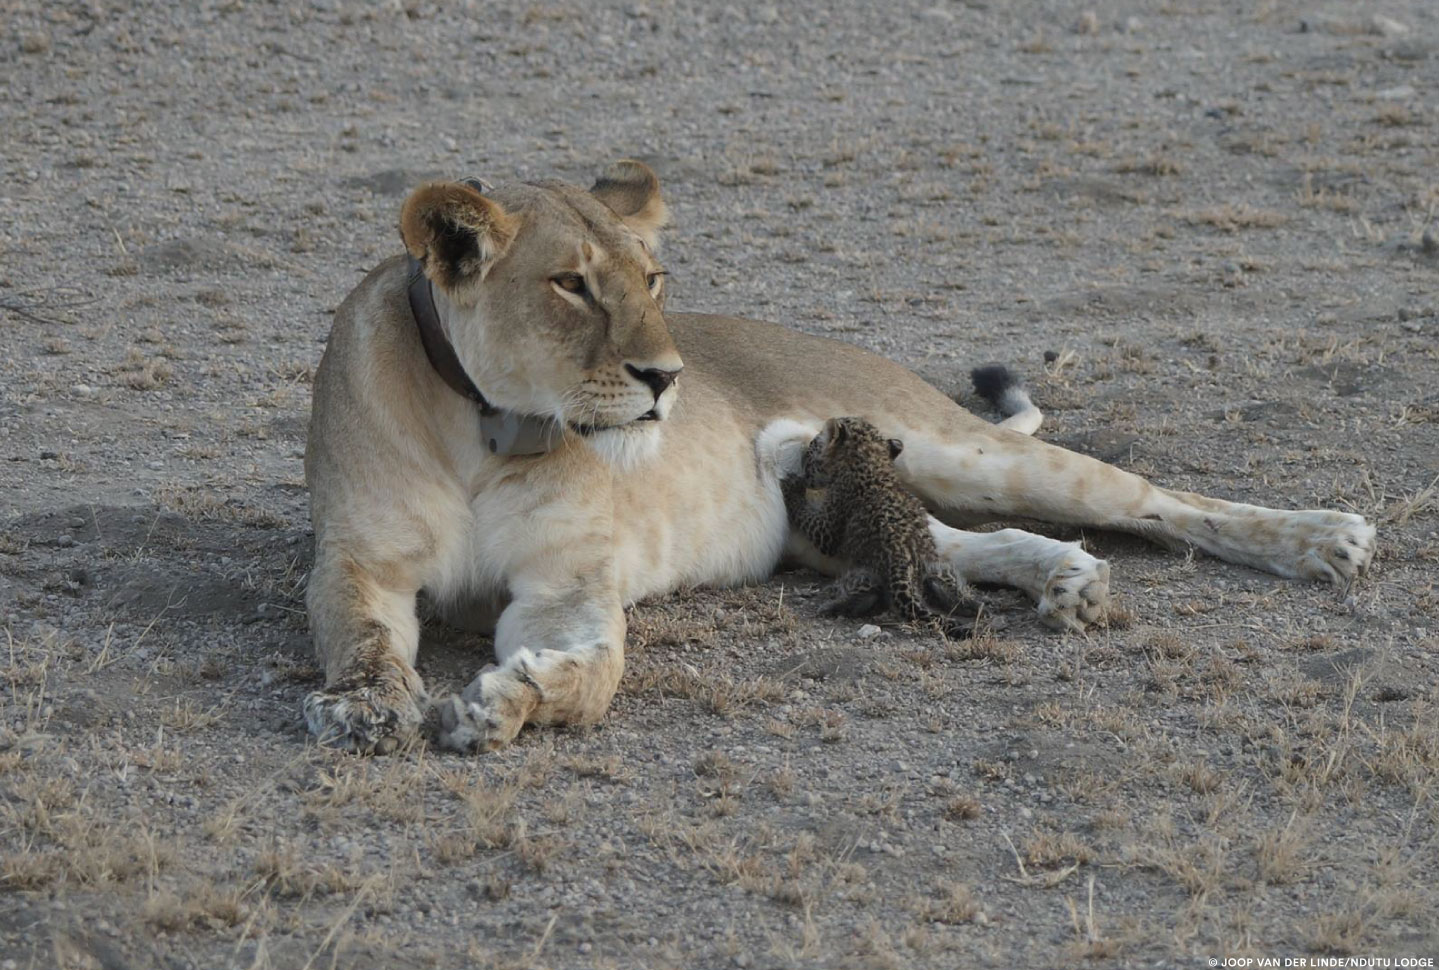 In a rare sighting, a baby leopard is seen suckling on a lionness at Ndutu Lodge at Tanzania's Ngorongoro Conservation Area.